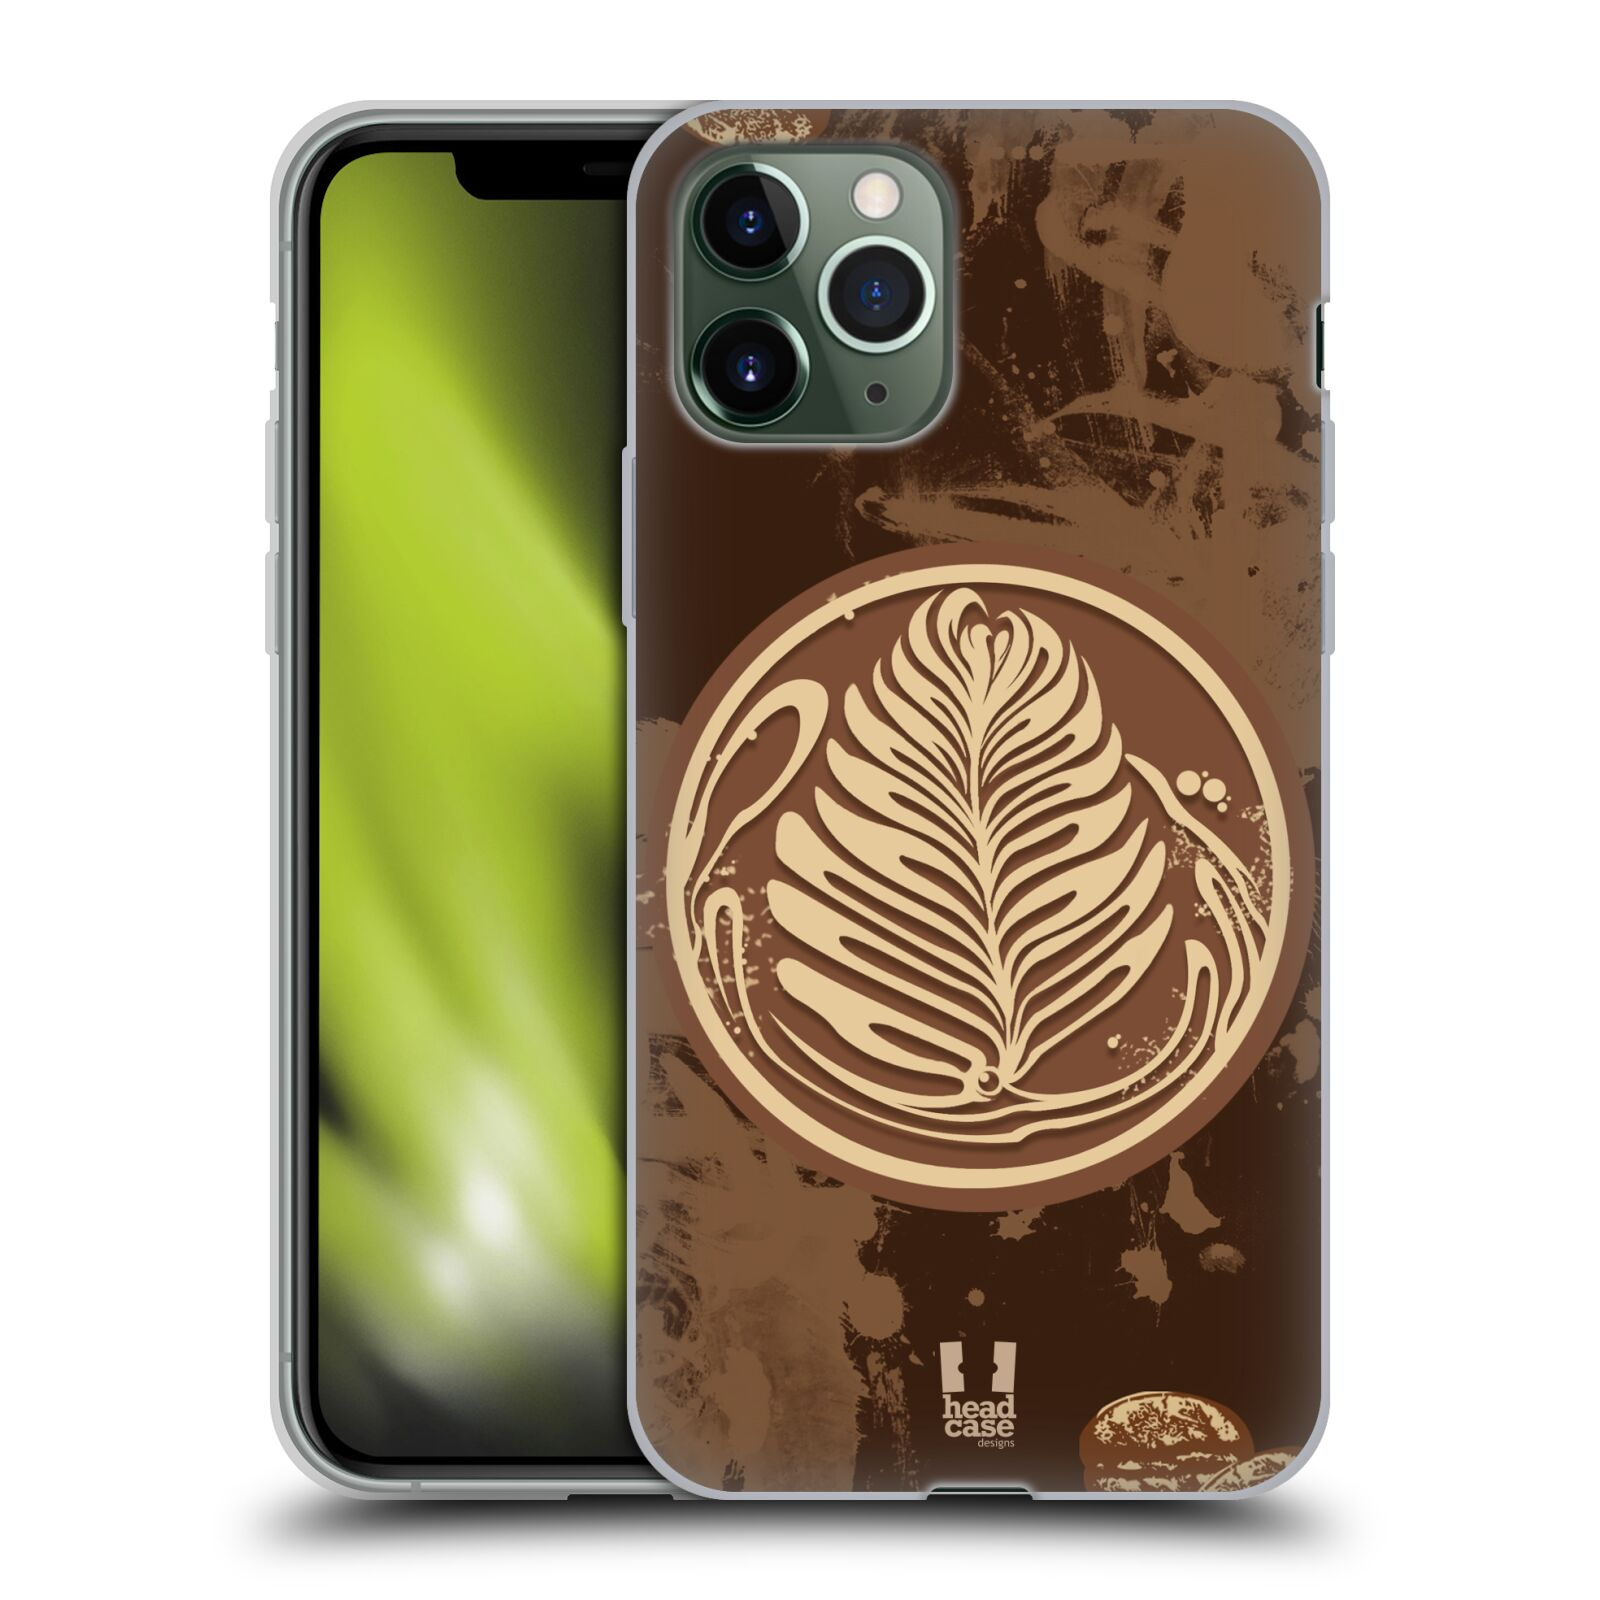 karl krytu na iphone 6s plus | Silikonové pouzdro na mobil Apple iPhone 11 Pro - Head Case - Coffee Art